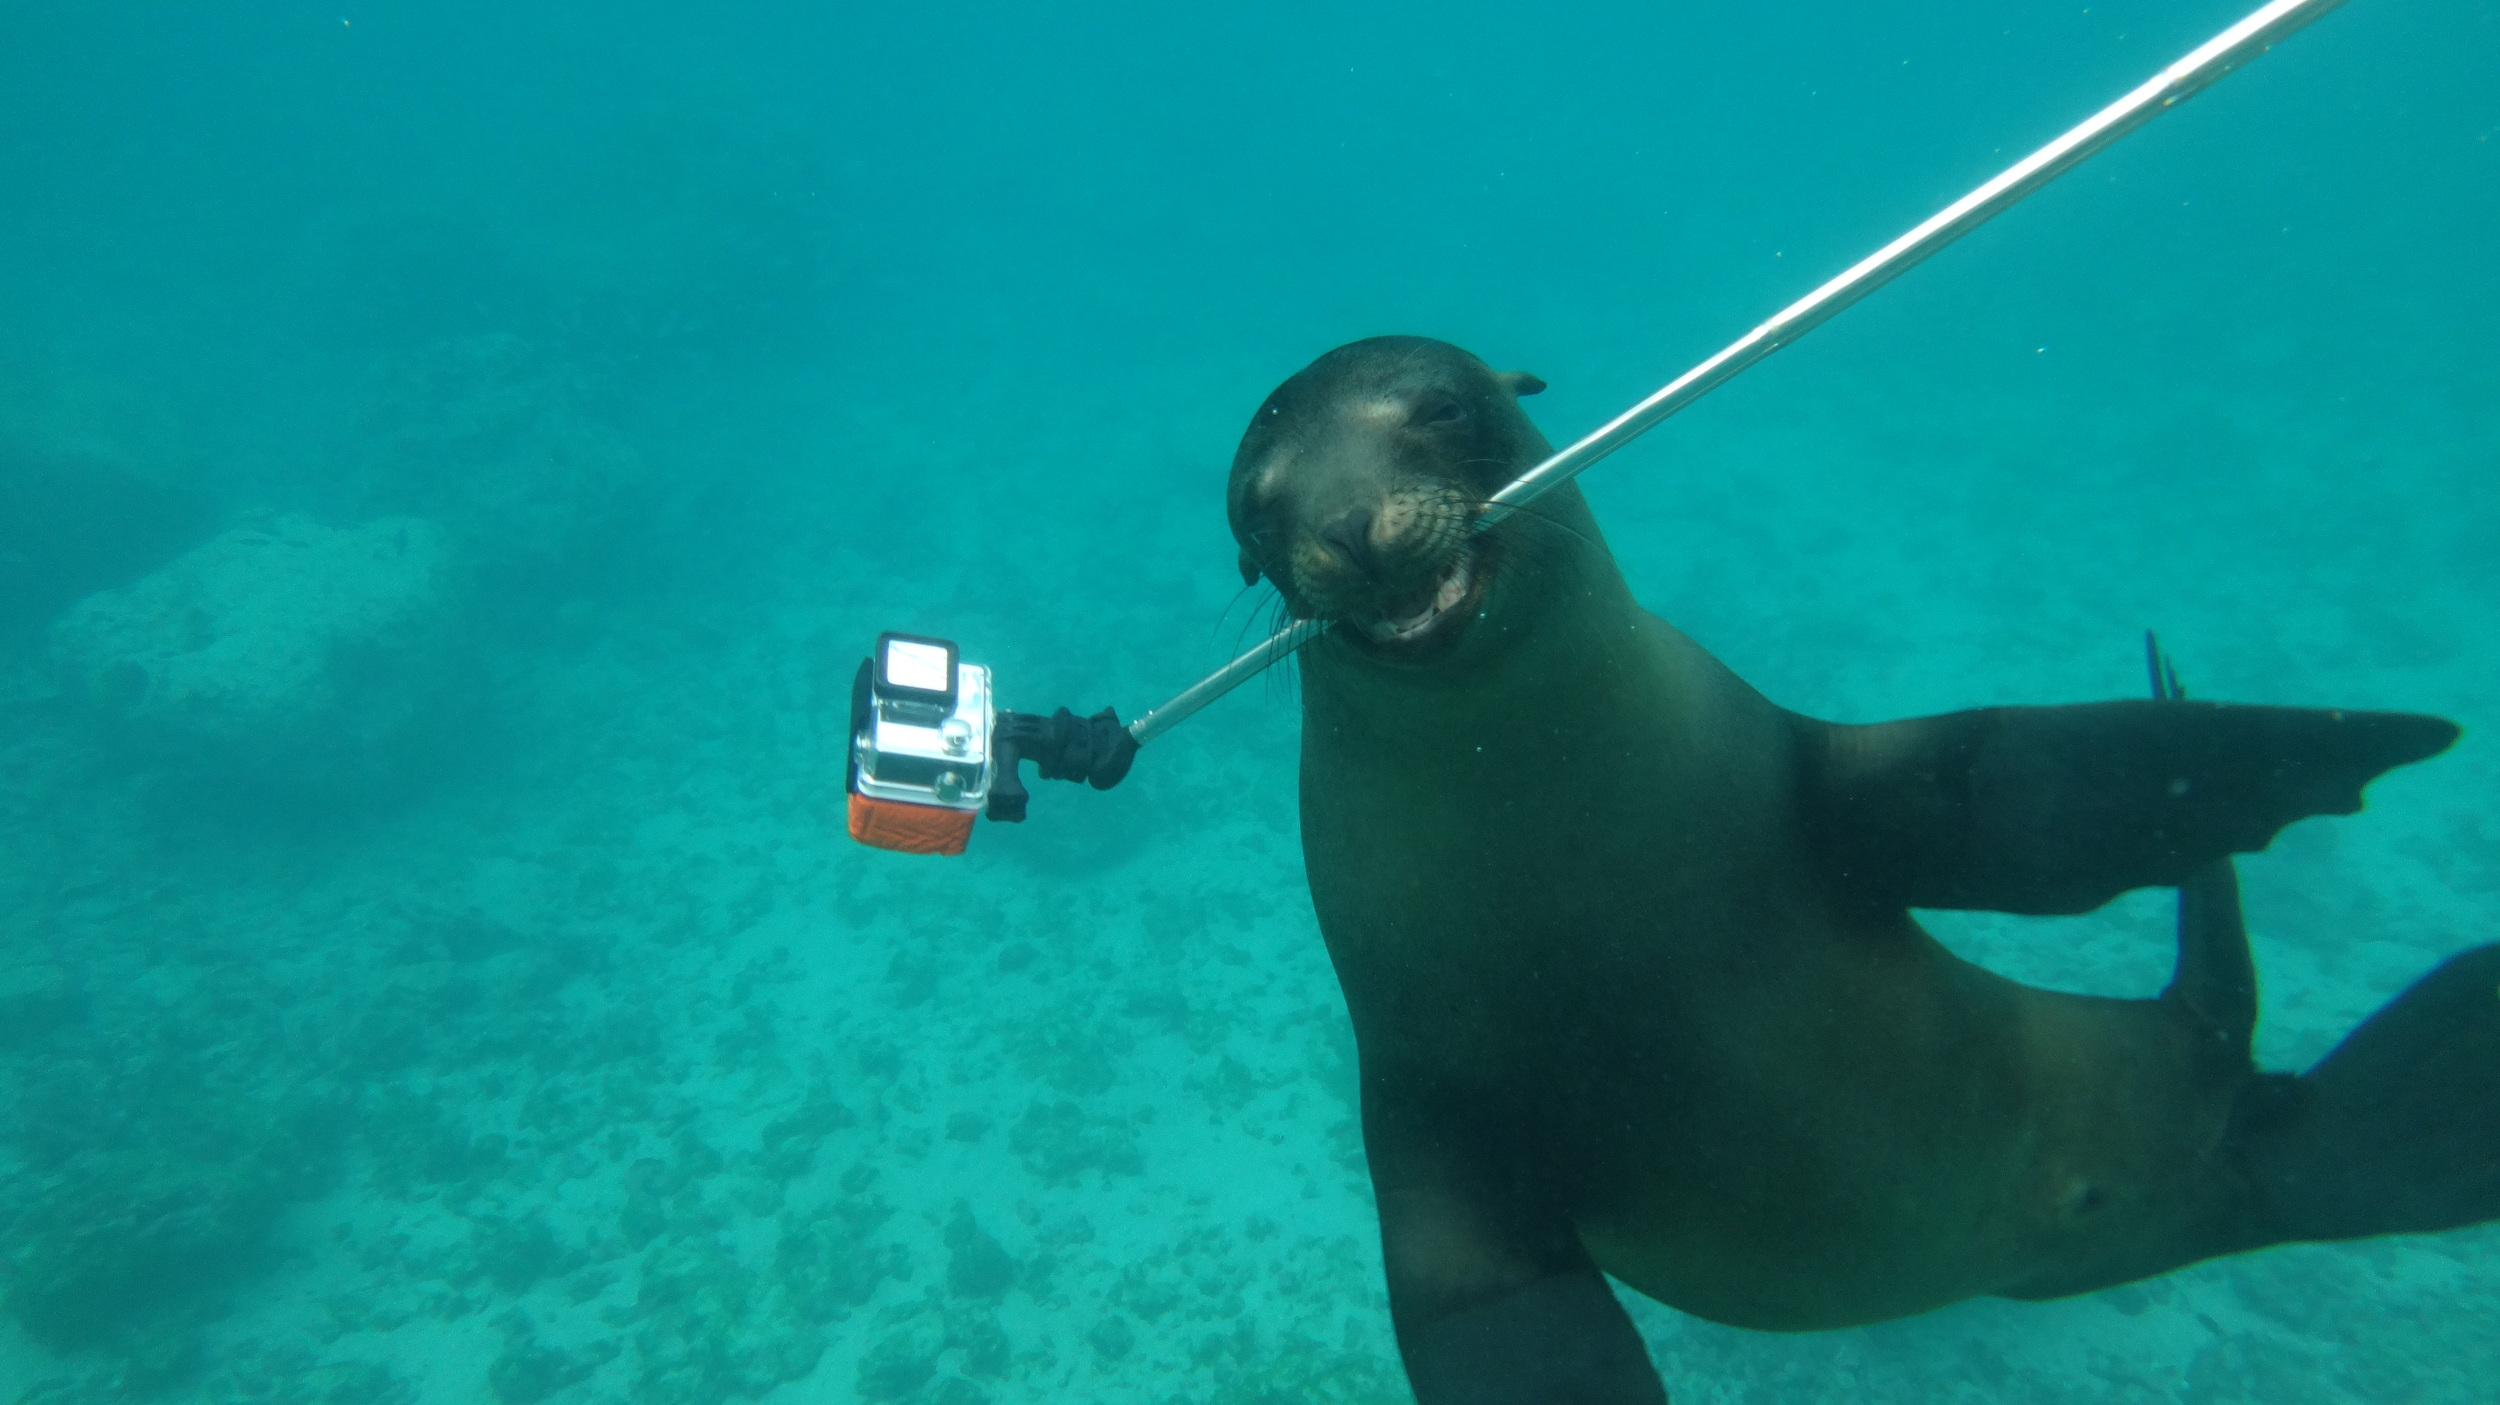 Even sea lions can take selfies.....